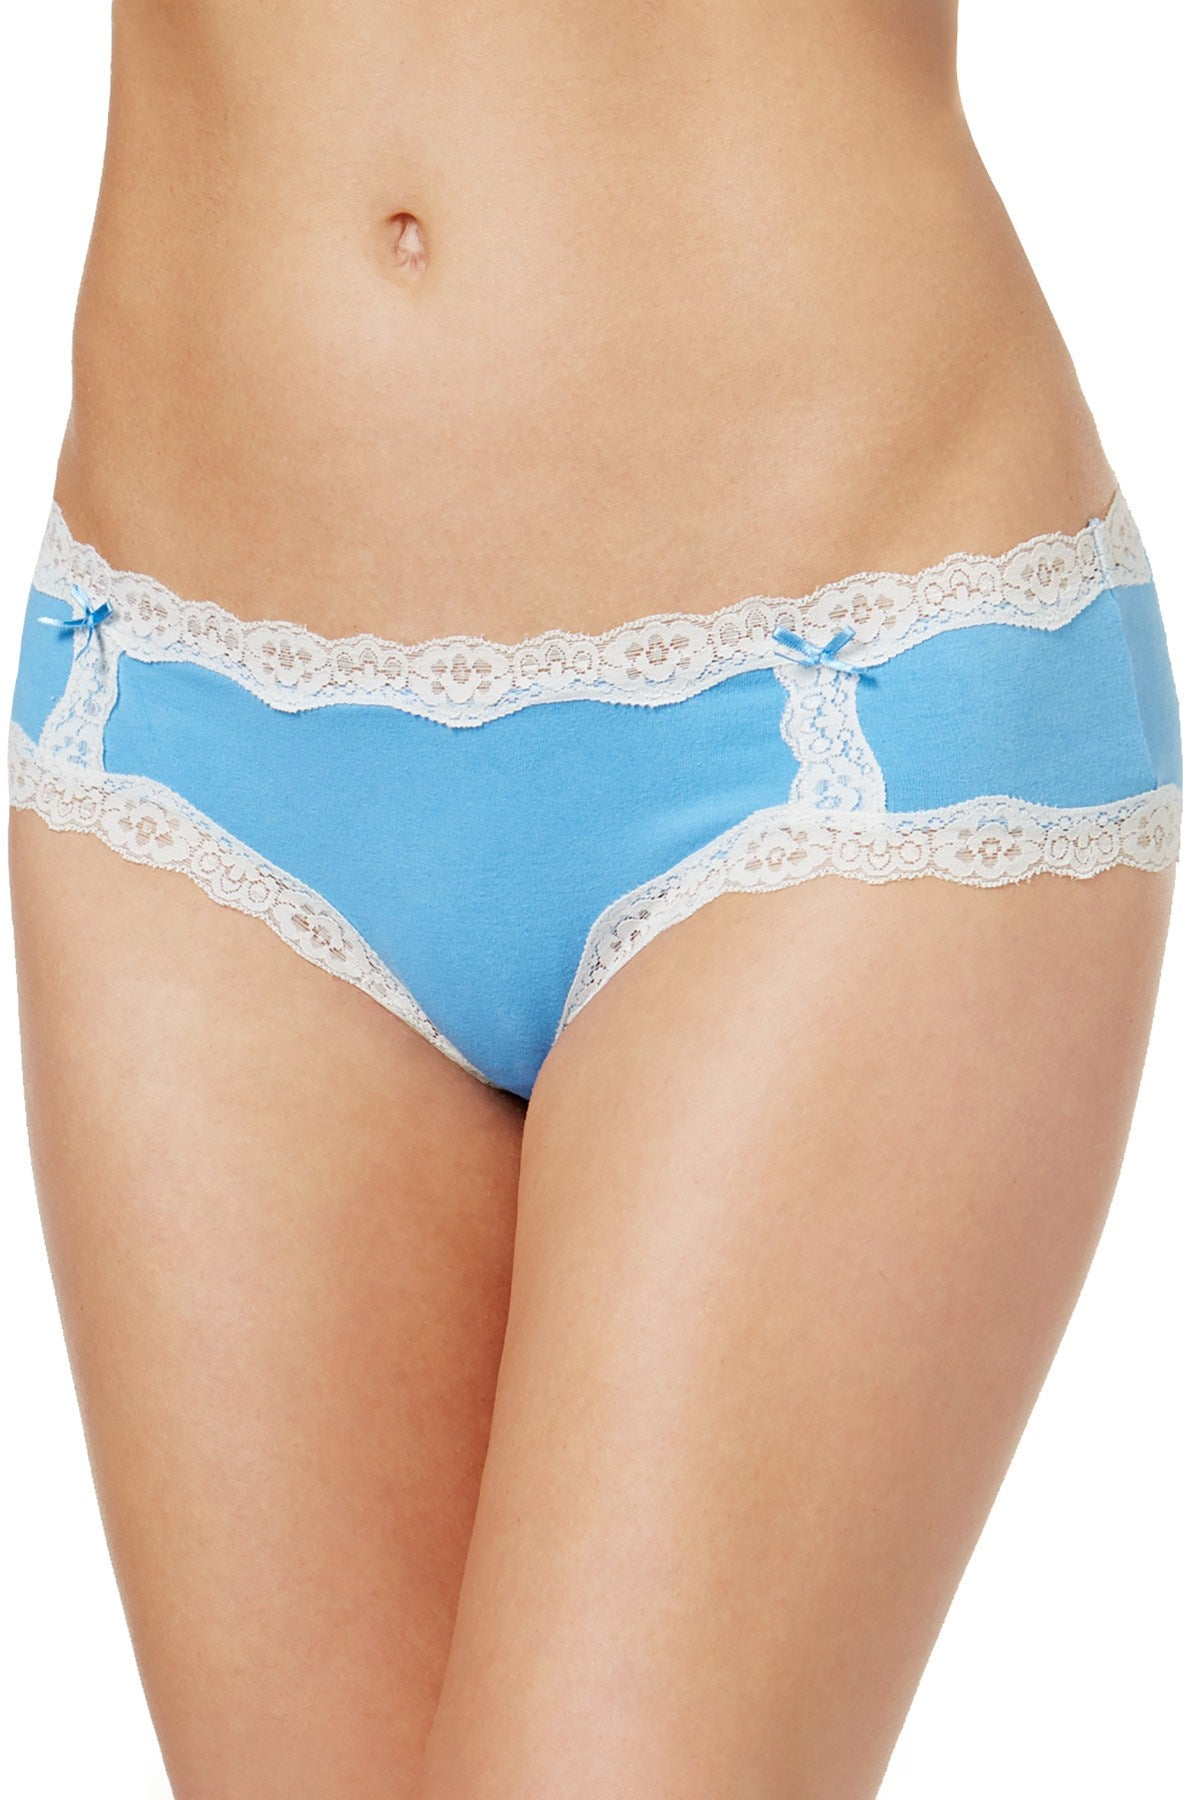 Jenni by Jennifer Moore Blue Cotton Lace Trim Hipster